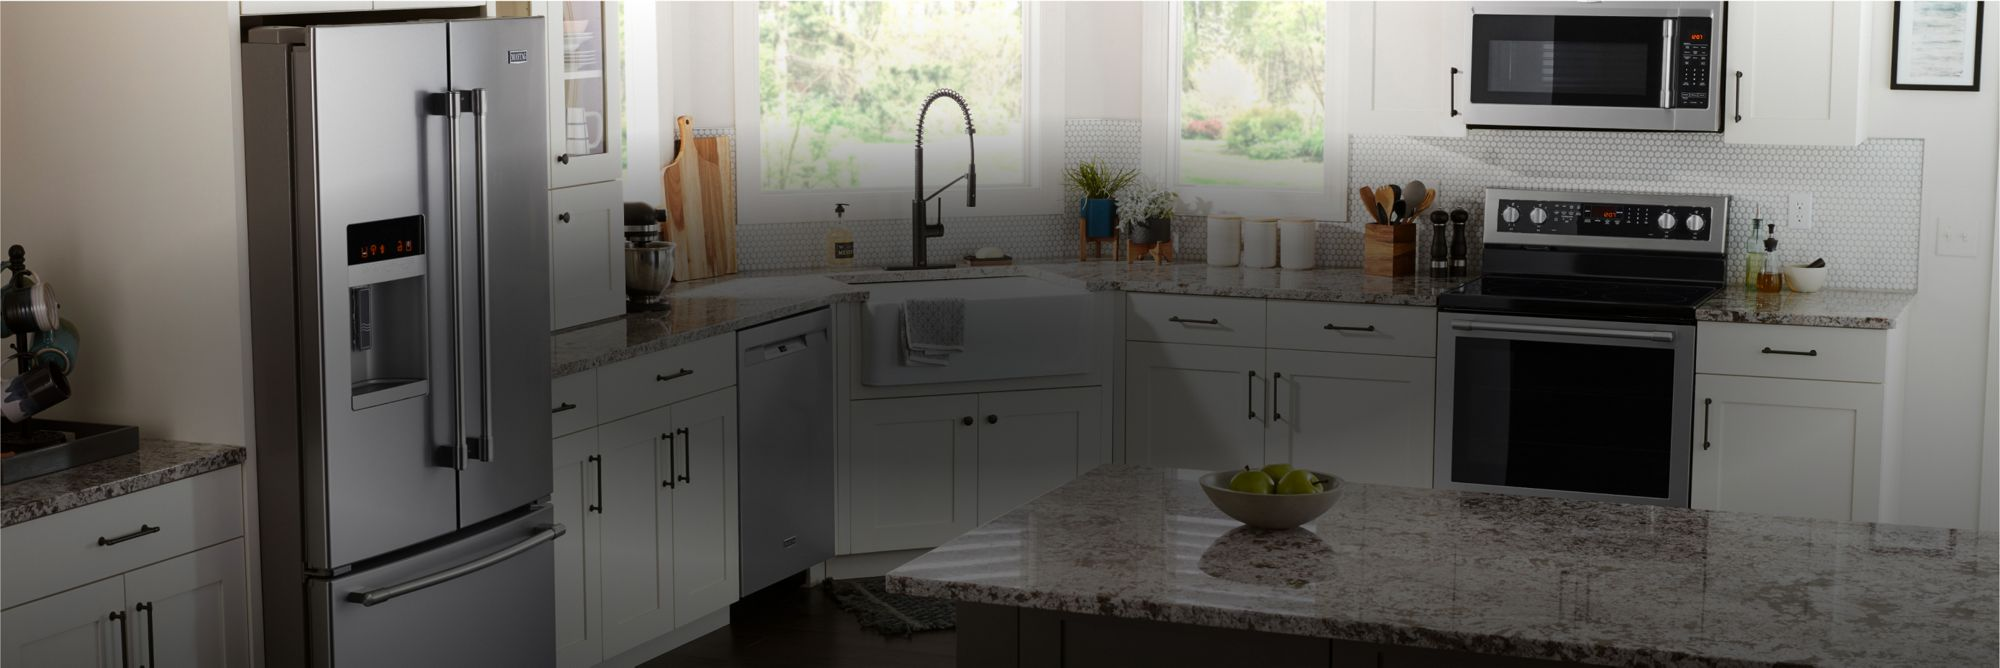 A kitchen outfitted with Maytag® appliances.